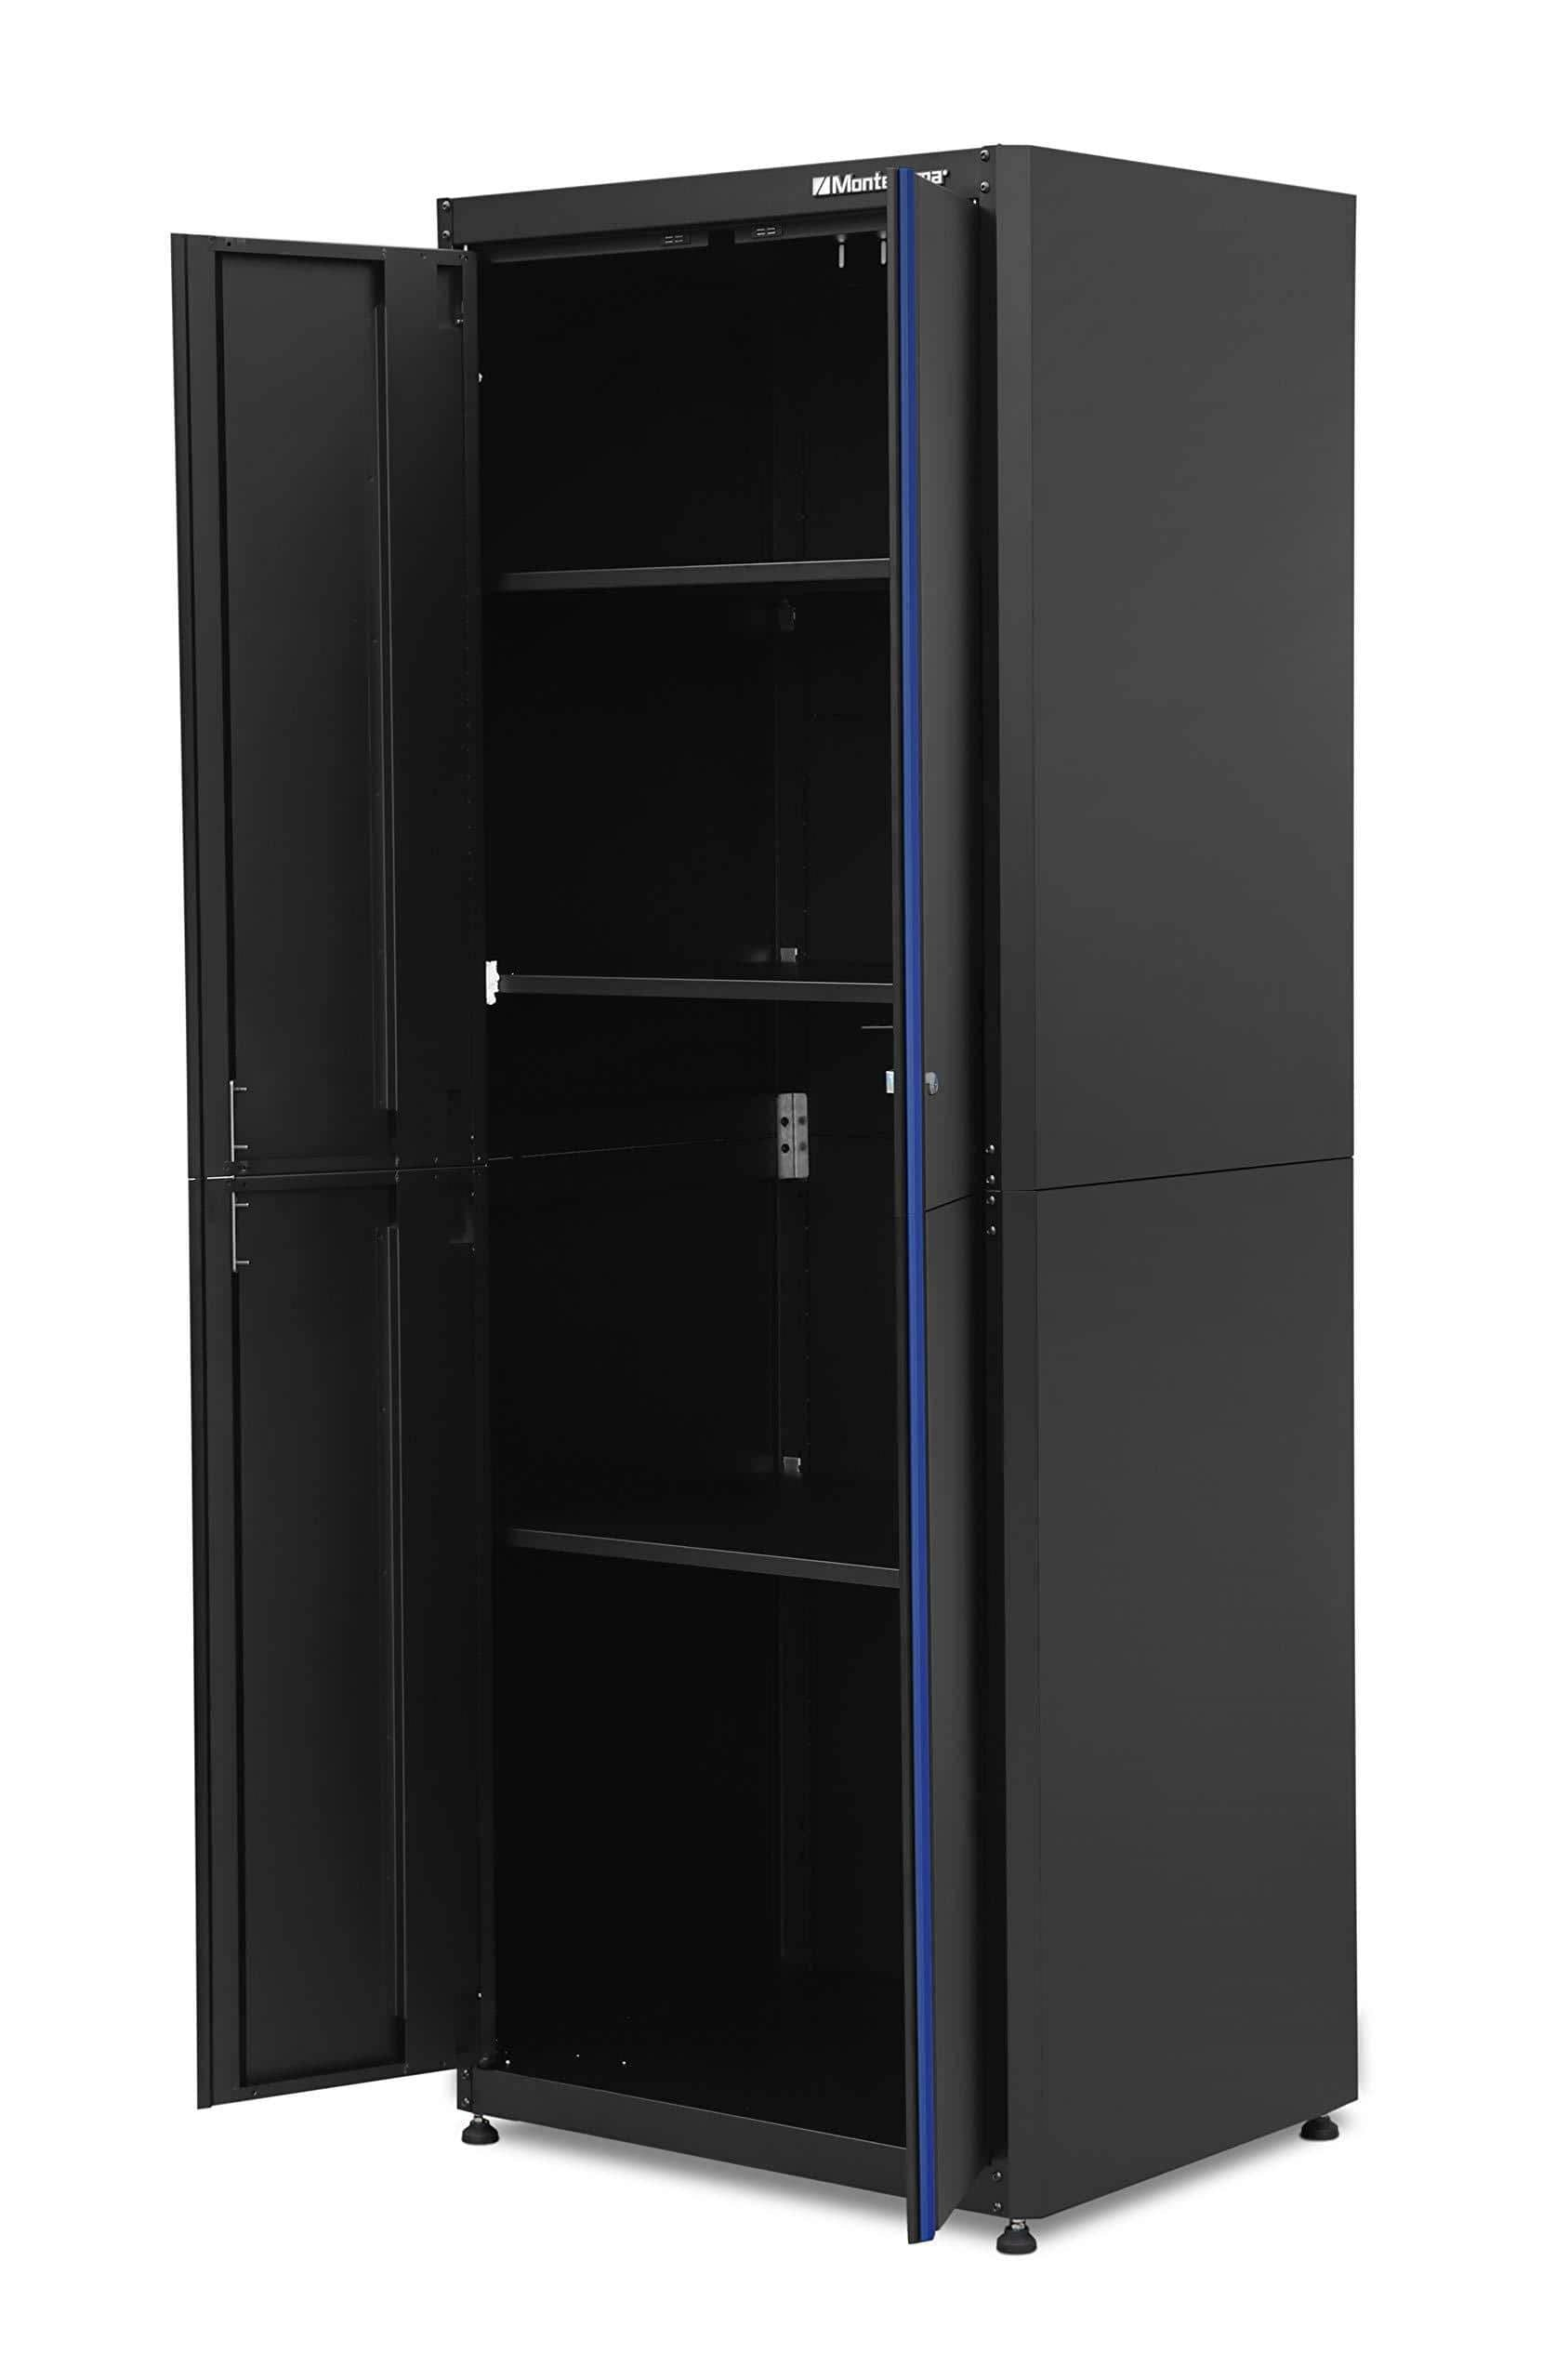 Order now montezuma garage tool storage system 30 5 x 24 locking 2 door standing cabinet with magnetic latches black powder coat finish bkmg3024tbc